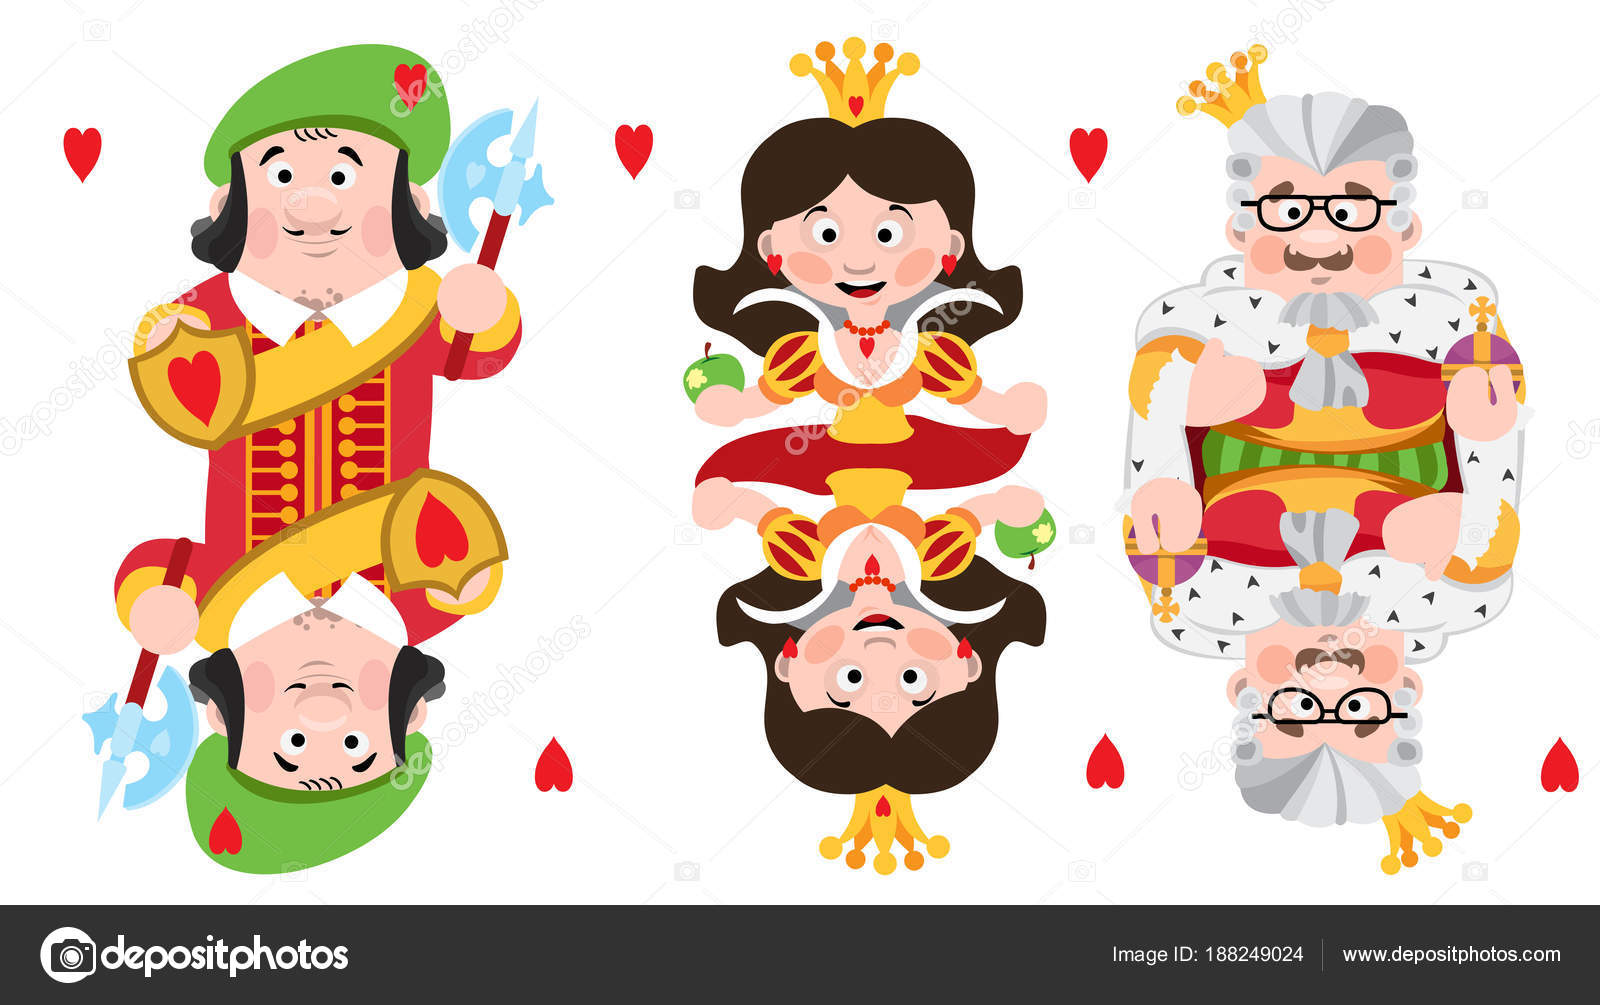 King and queen of hearts cartoon image | King Prince Queen